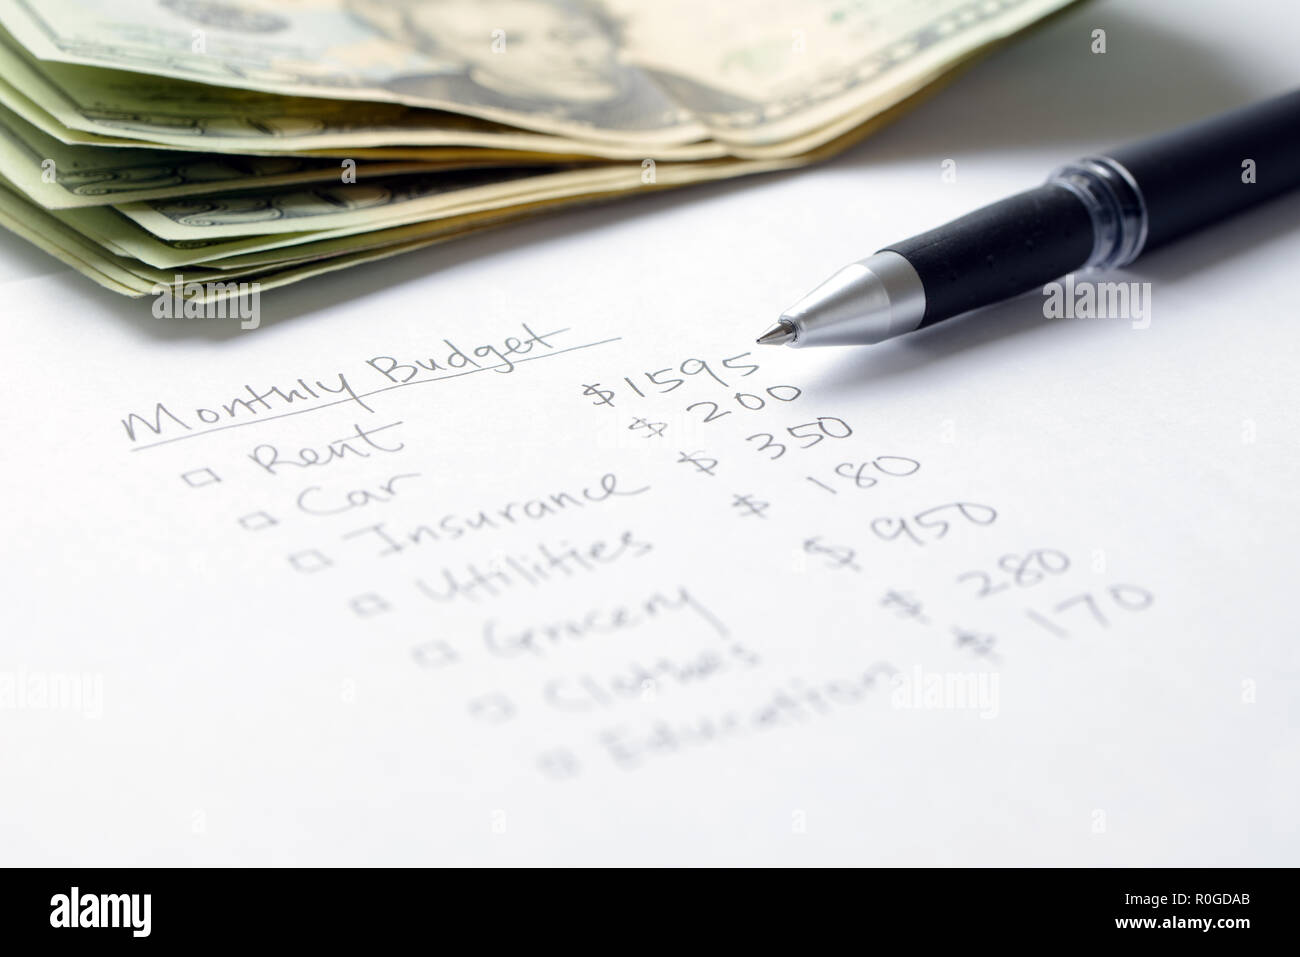 Monthly budget planning - Stock Image